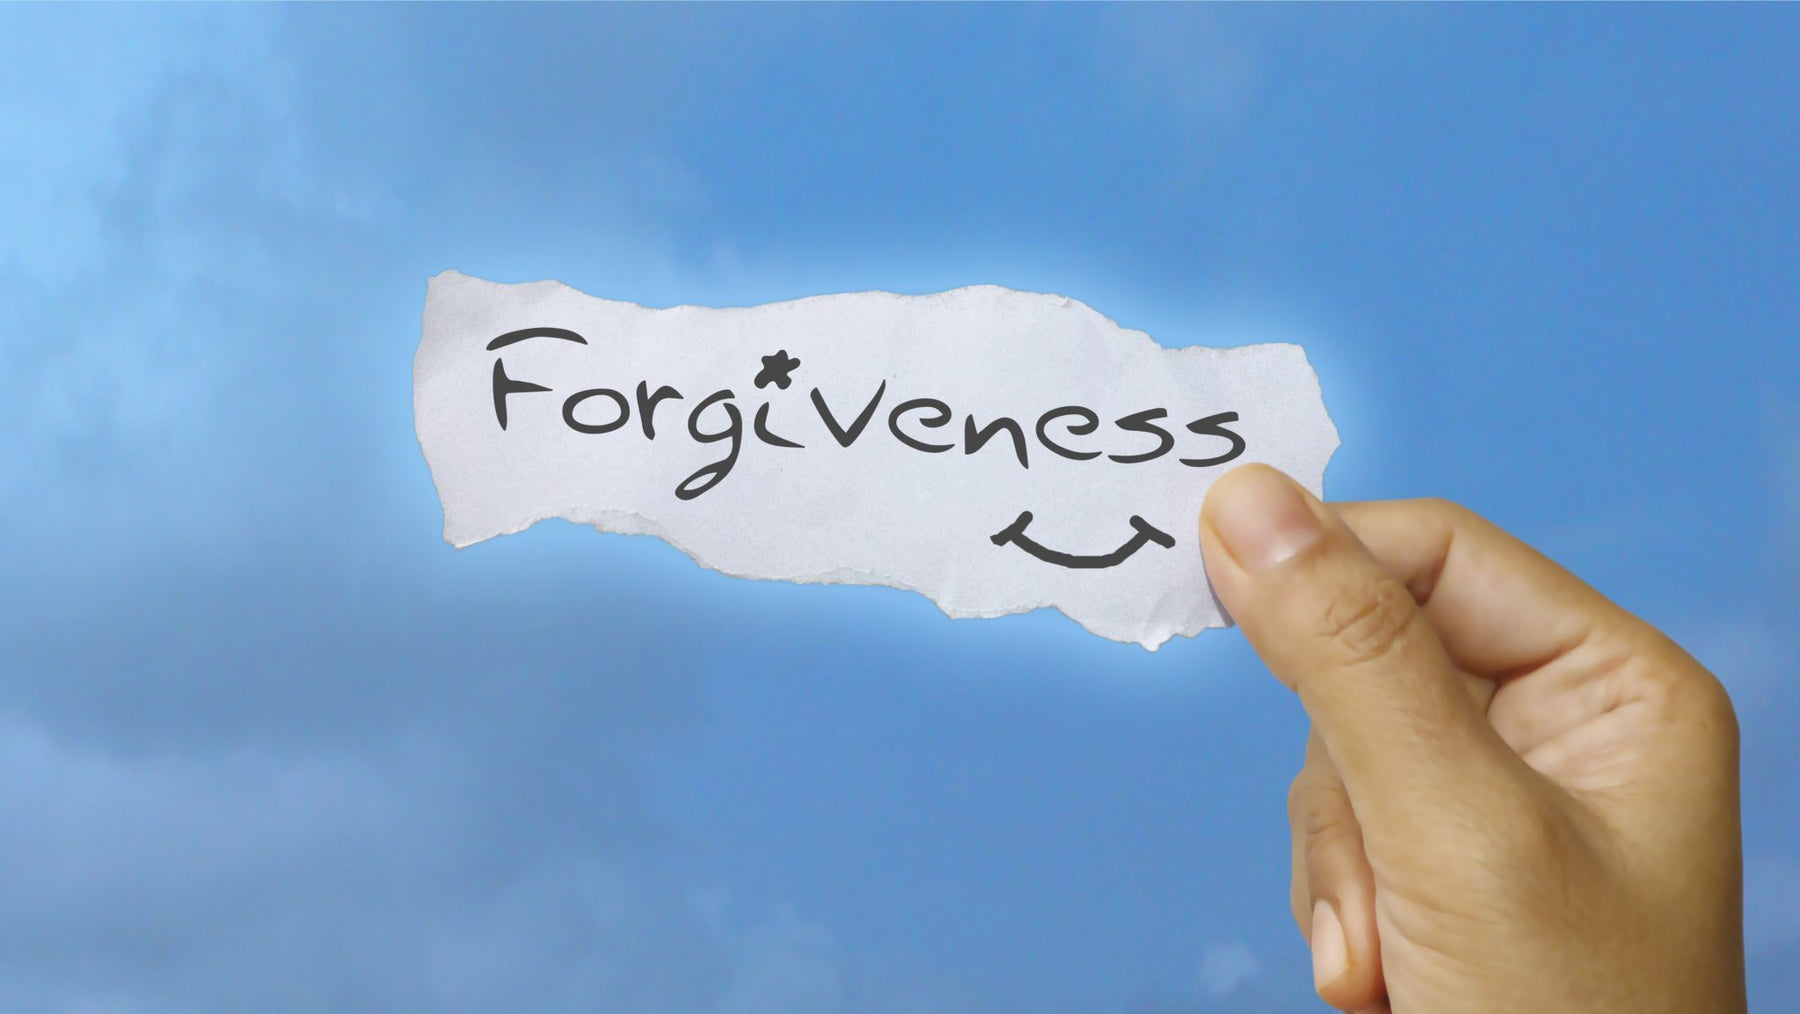 How I Learned to Forgive